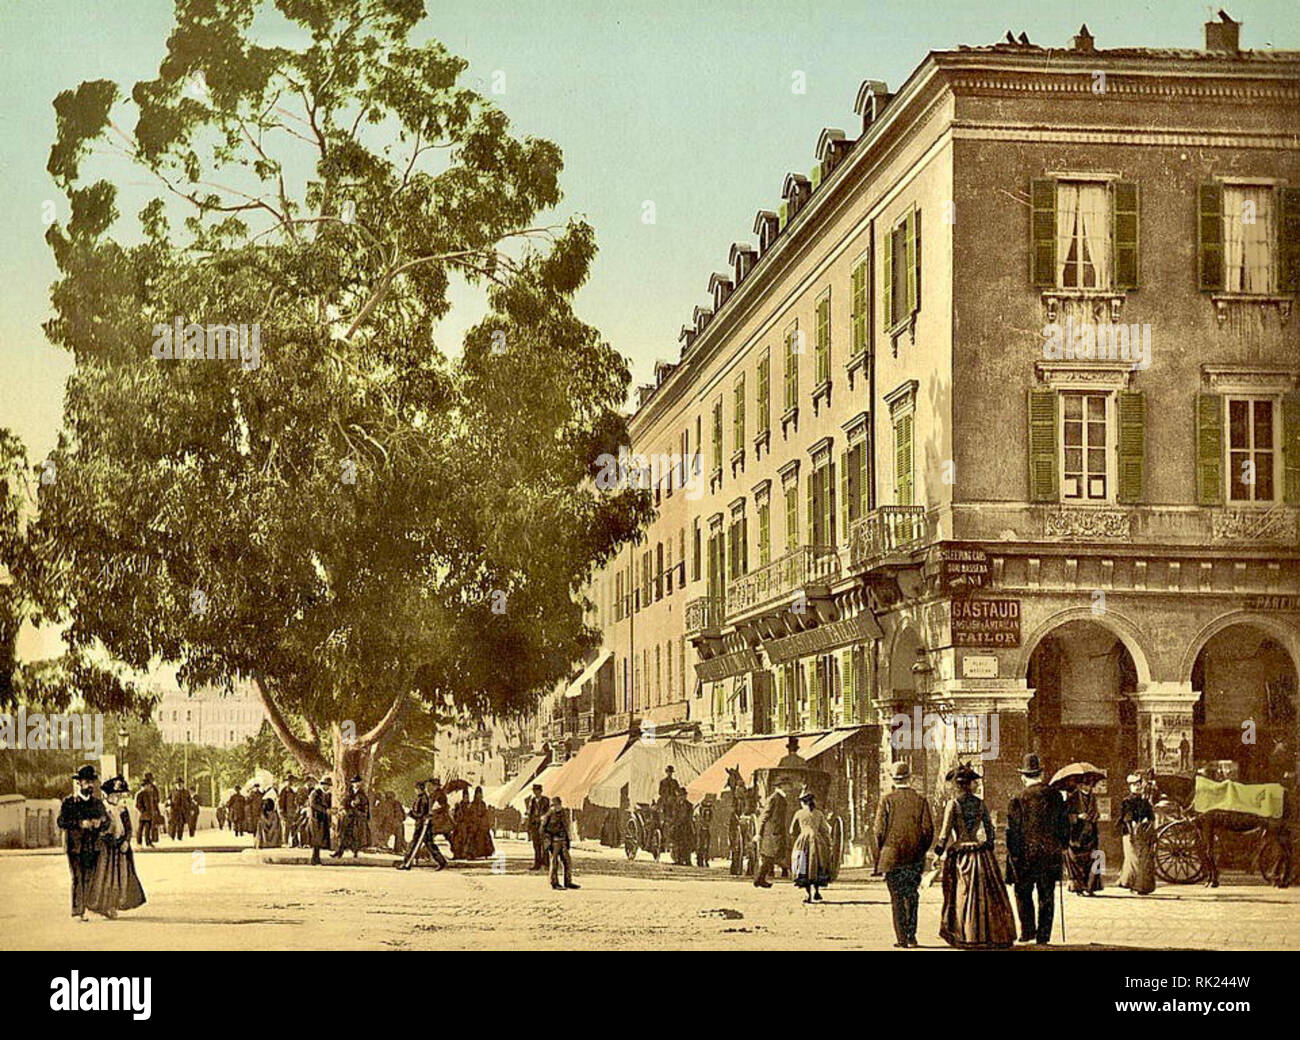 Place Masséna, Nice, France. Between 1890 & 1910. - Stock Image